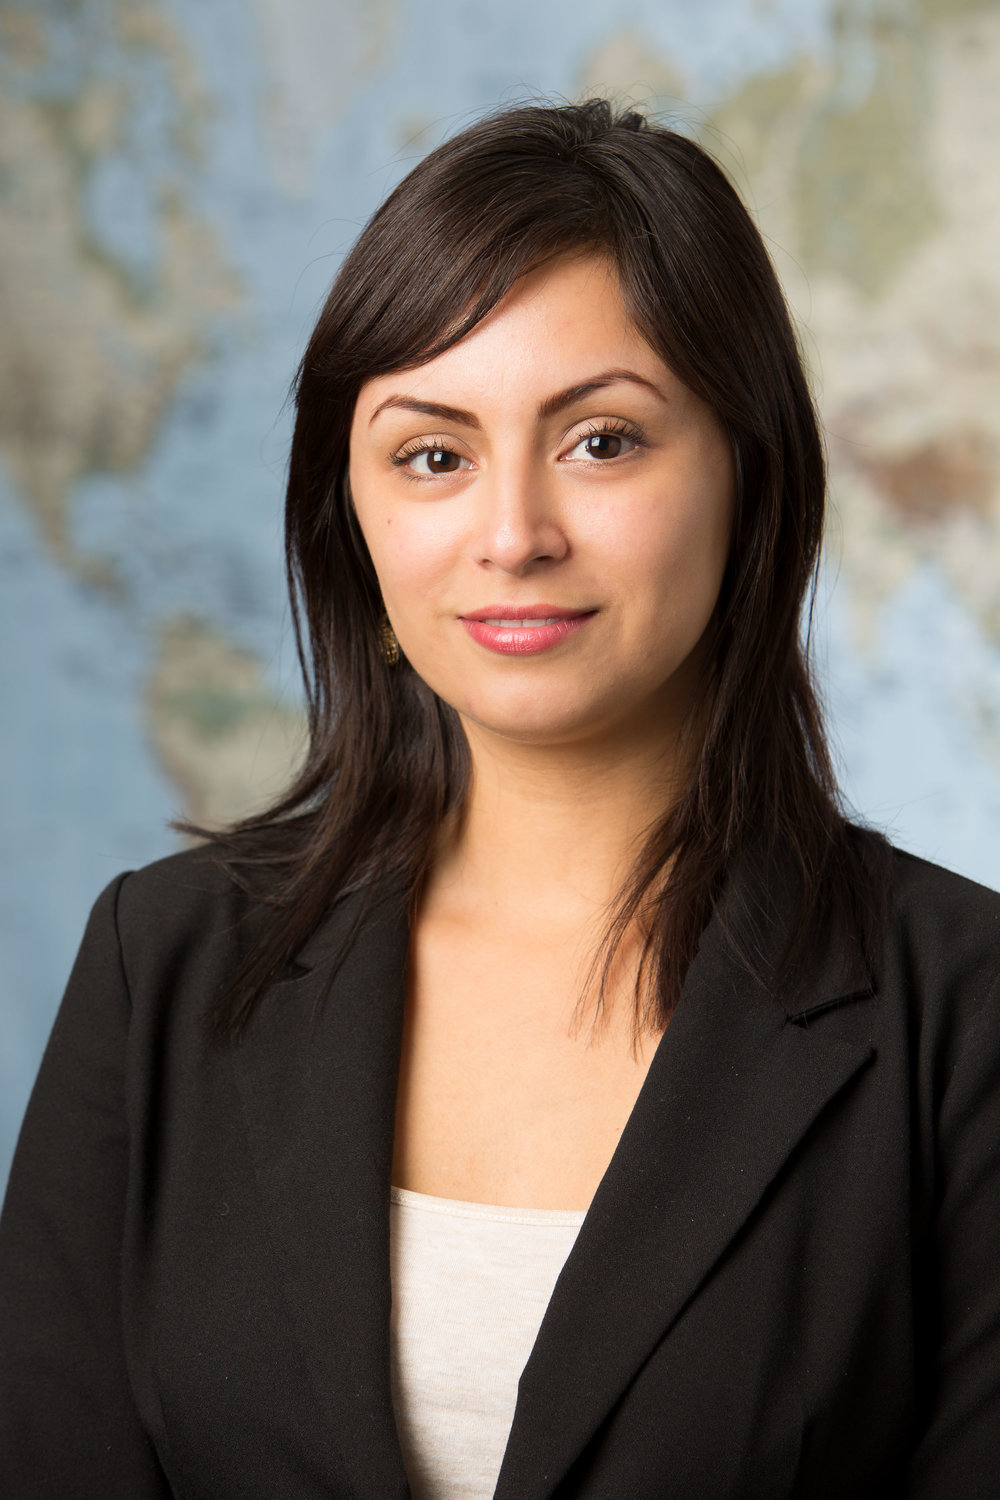 Corporate headshot of a young professional woman.